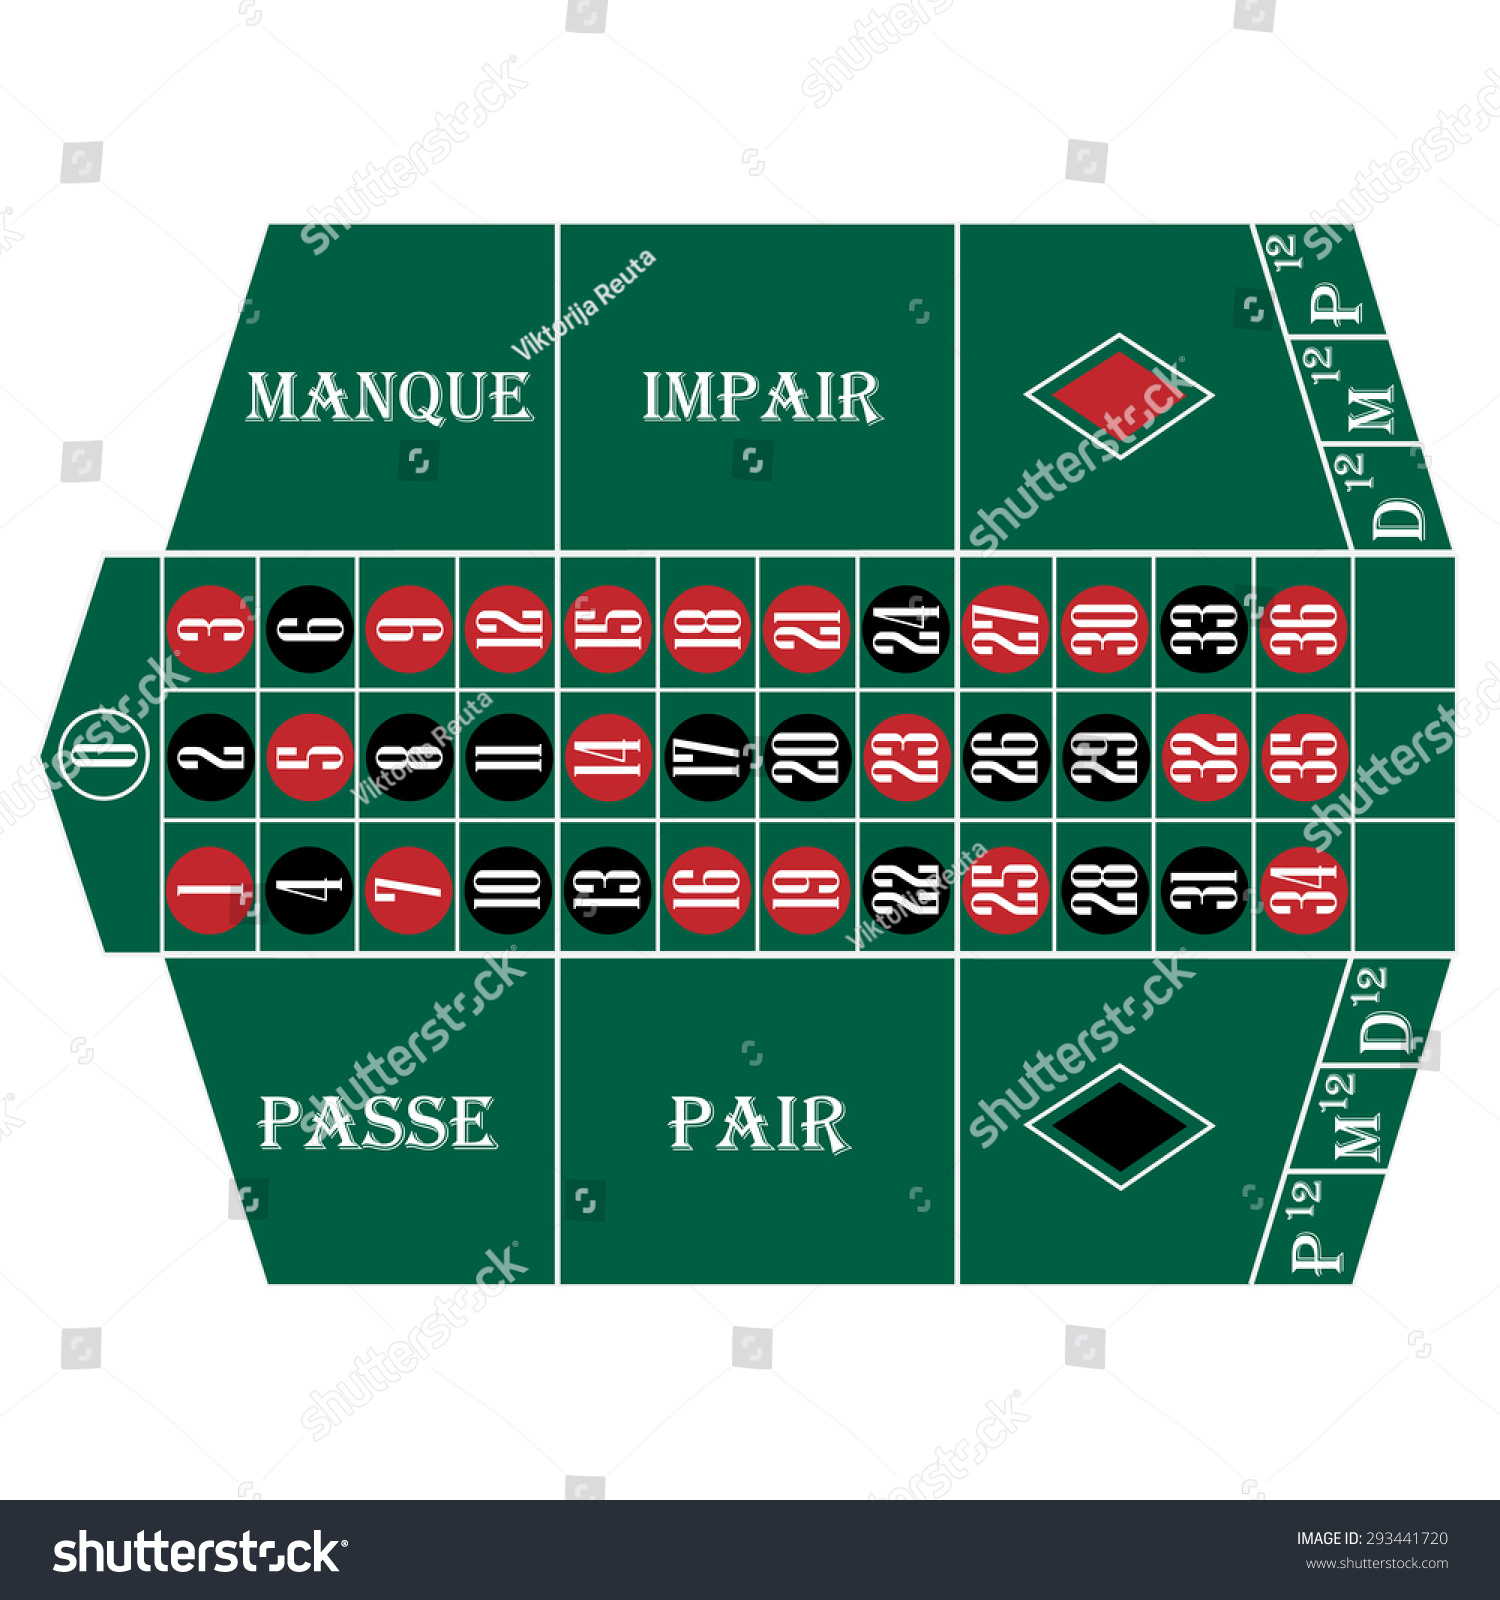 Traditional european roulette table vector illustration stock vector - Roulette Table Vector Isolated Casino Table Black And Red Gambling French Roulette